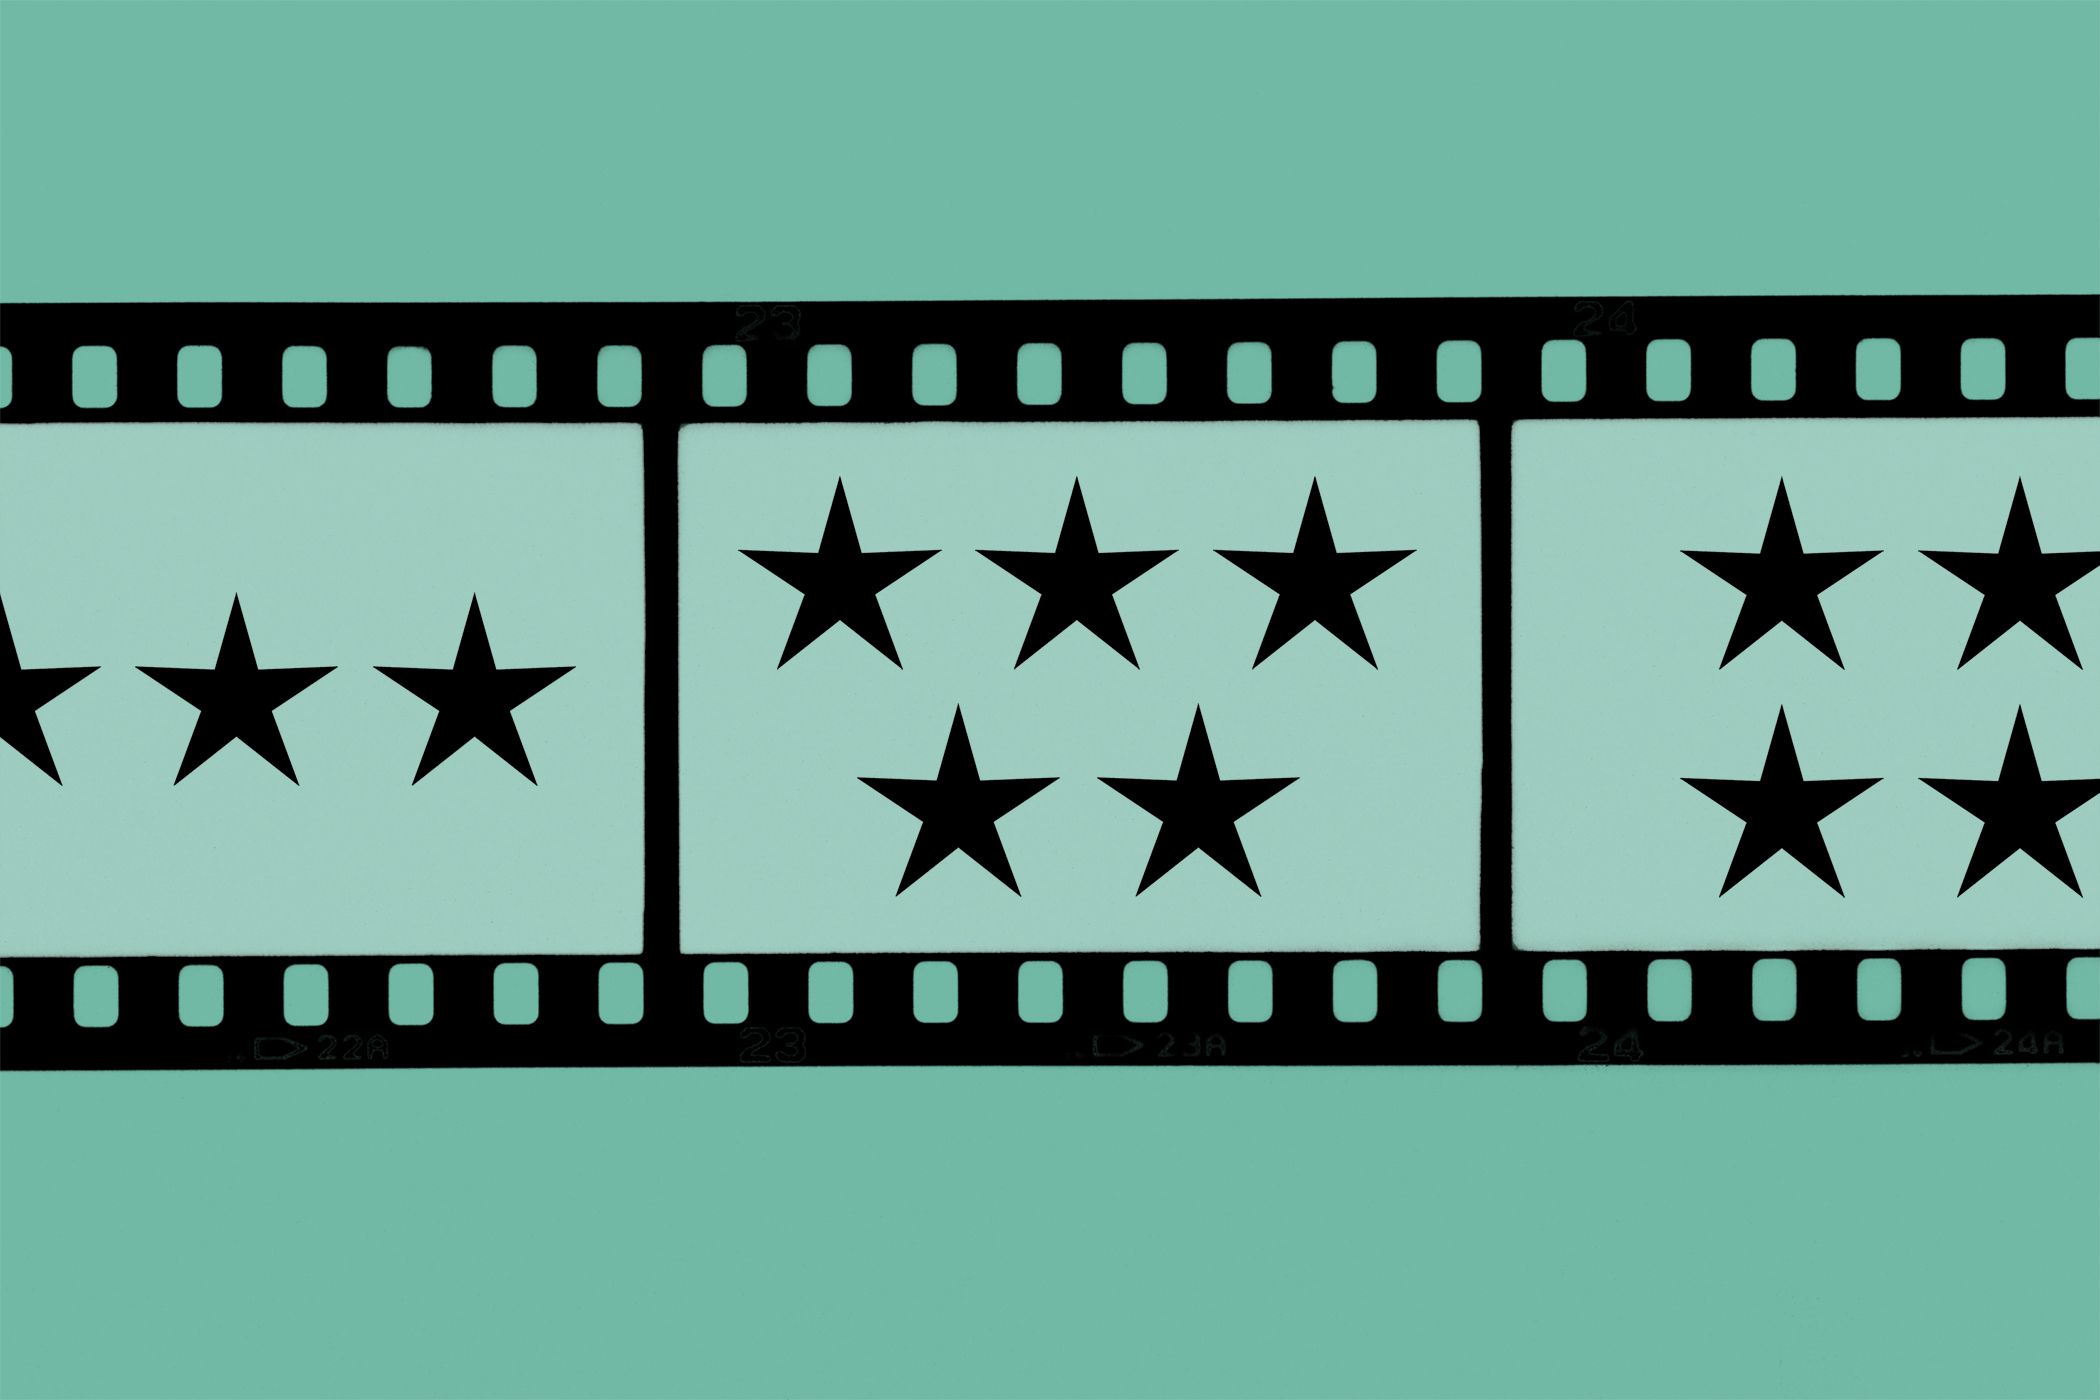 Film with stars on it